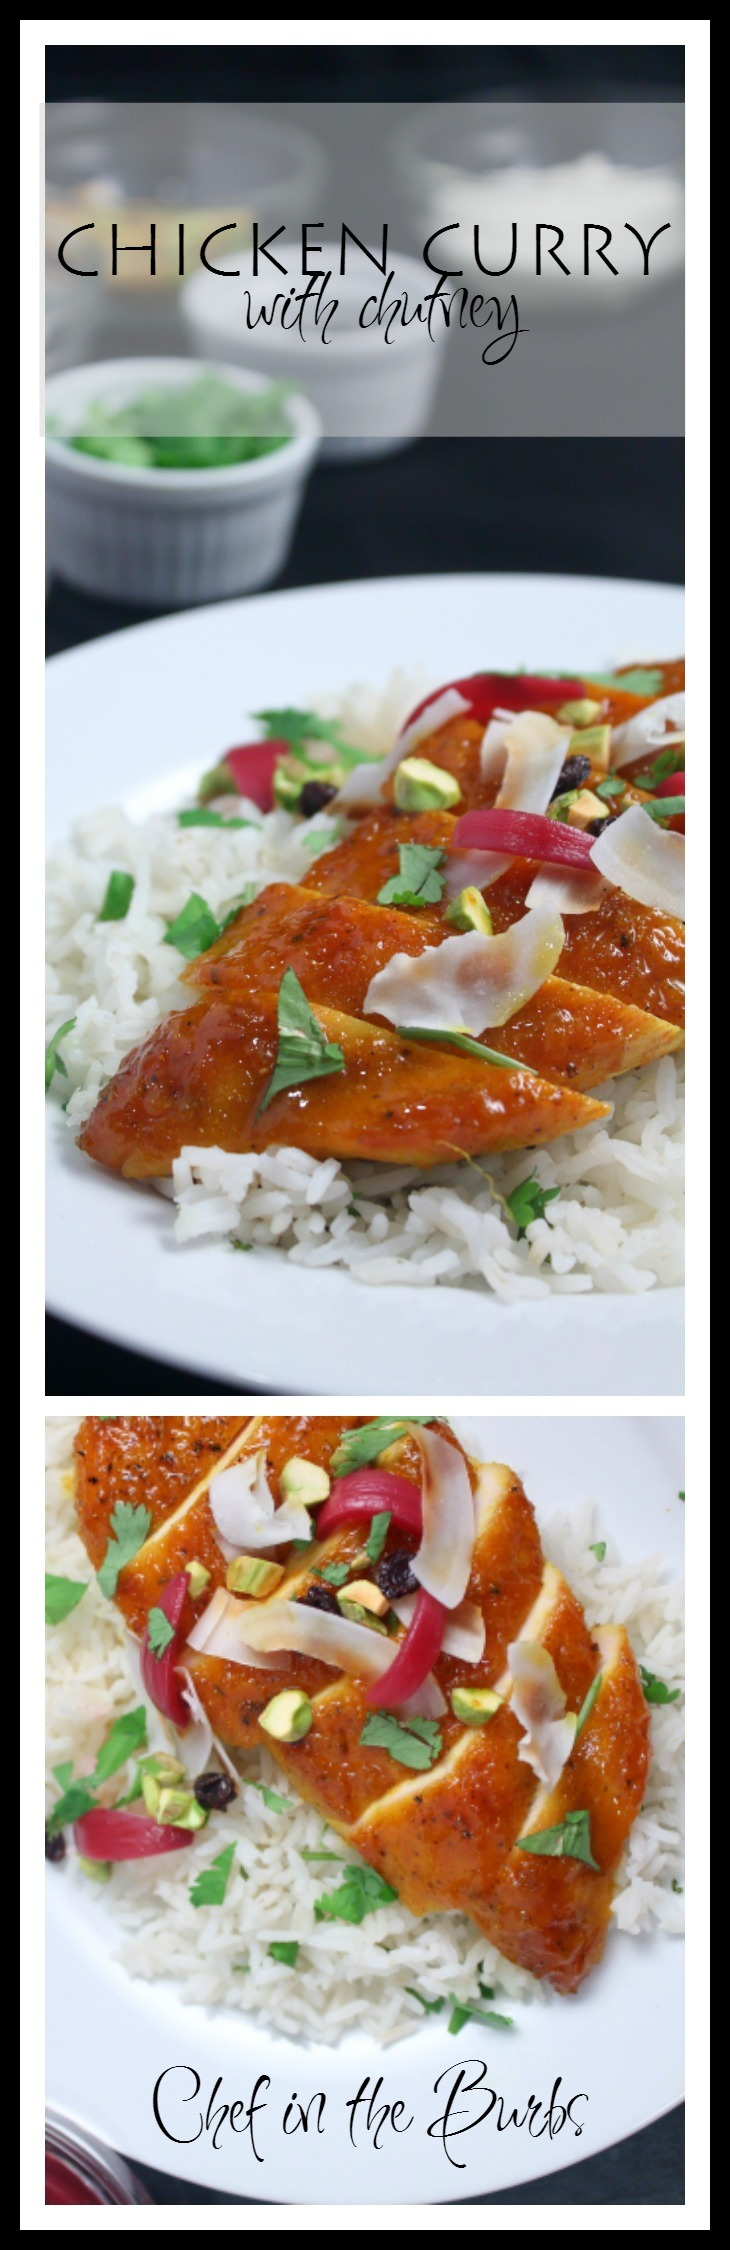 Chicken Curry with Chutney Collage